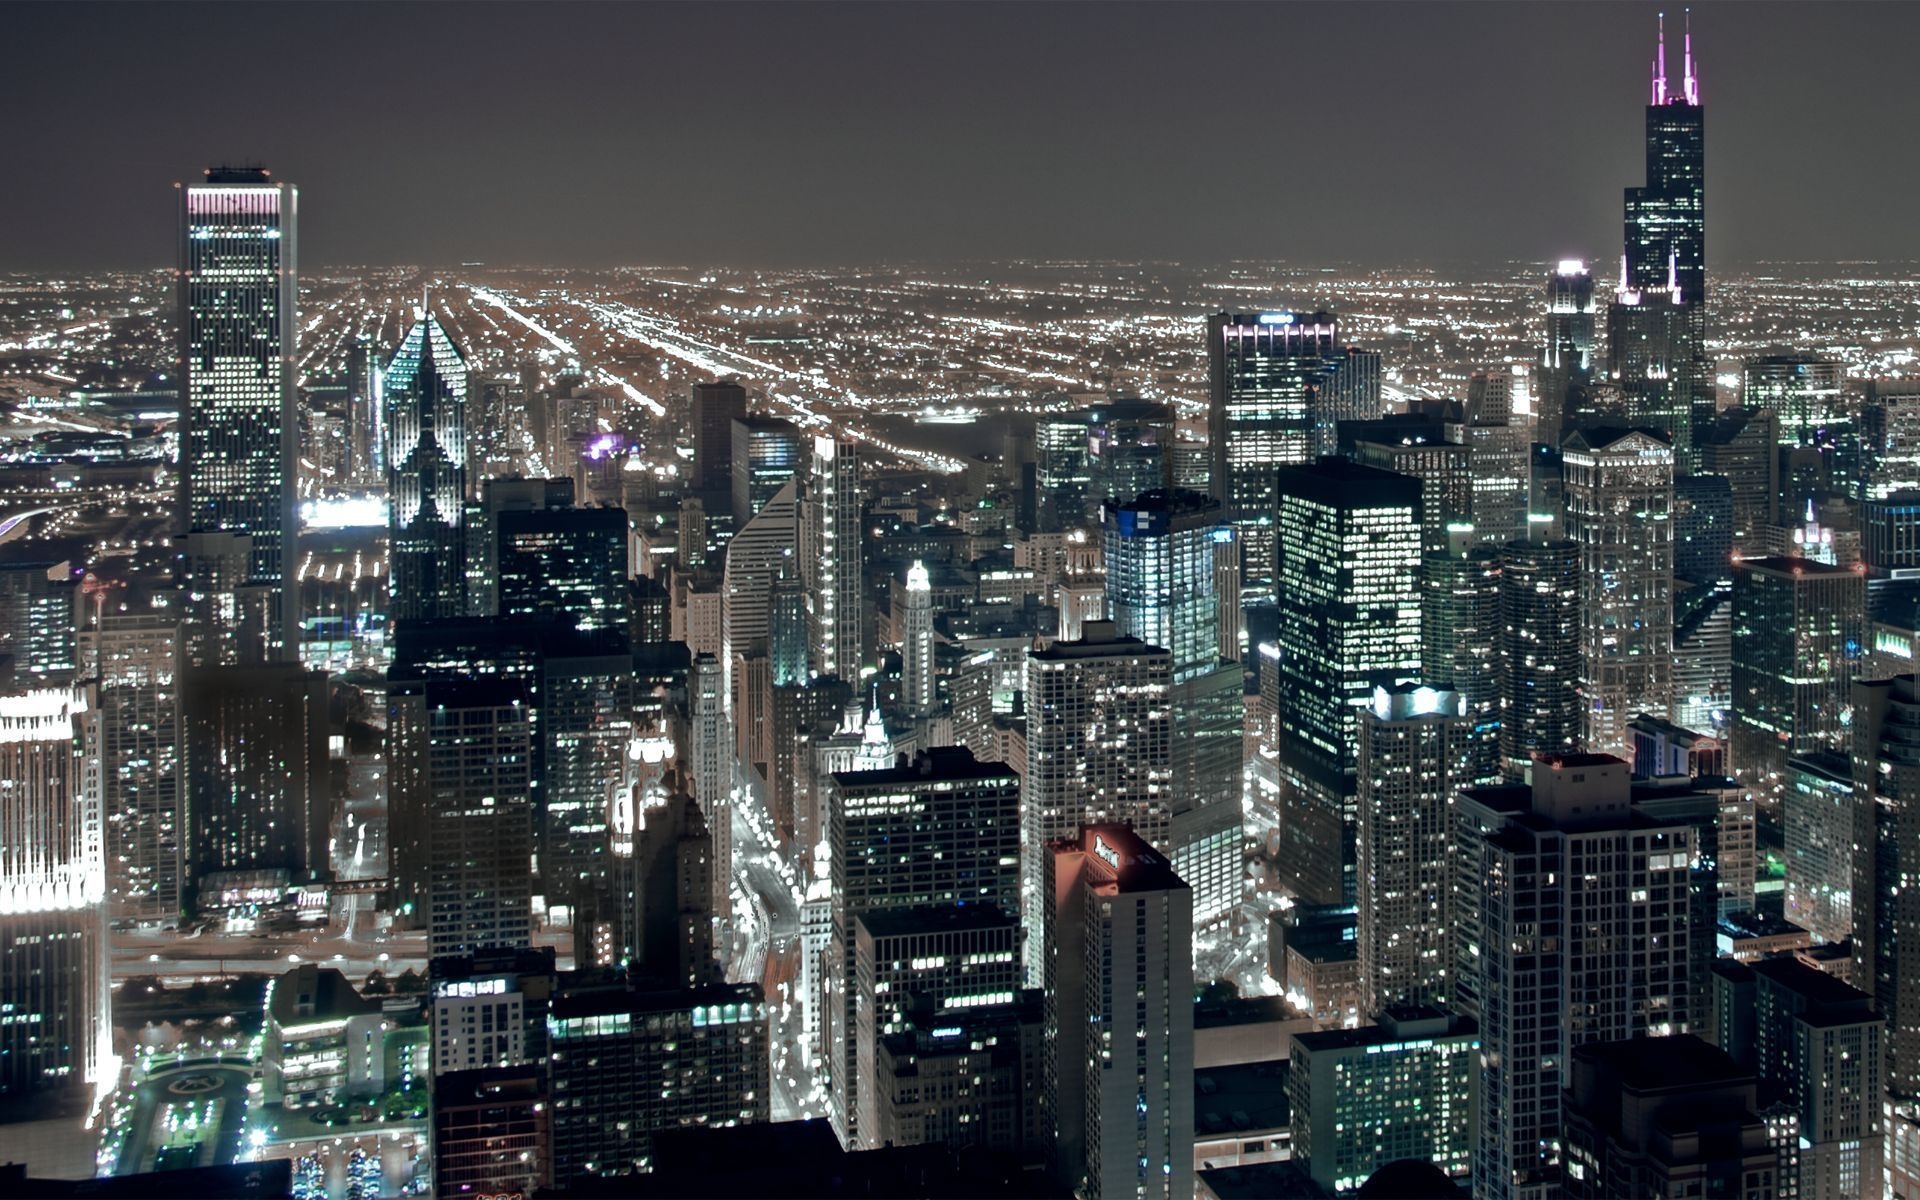 Best Wallpaper Night Cities - Chicago-Night-City  Collection.jpg